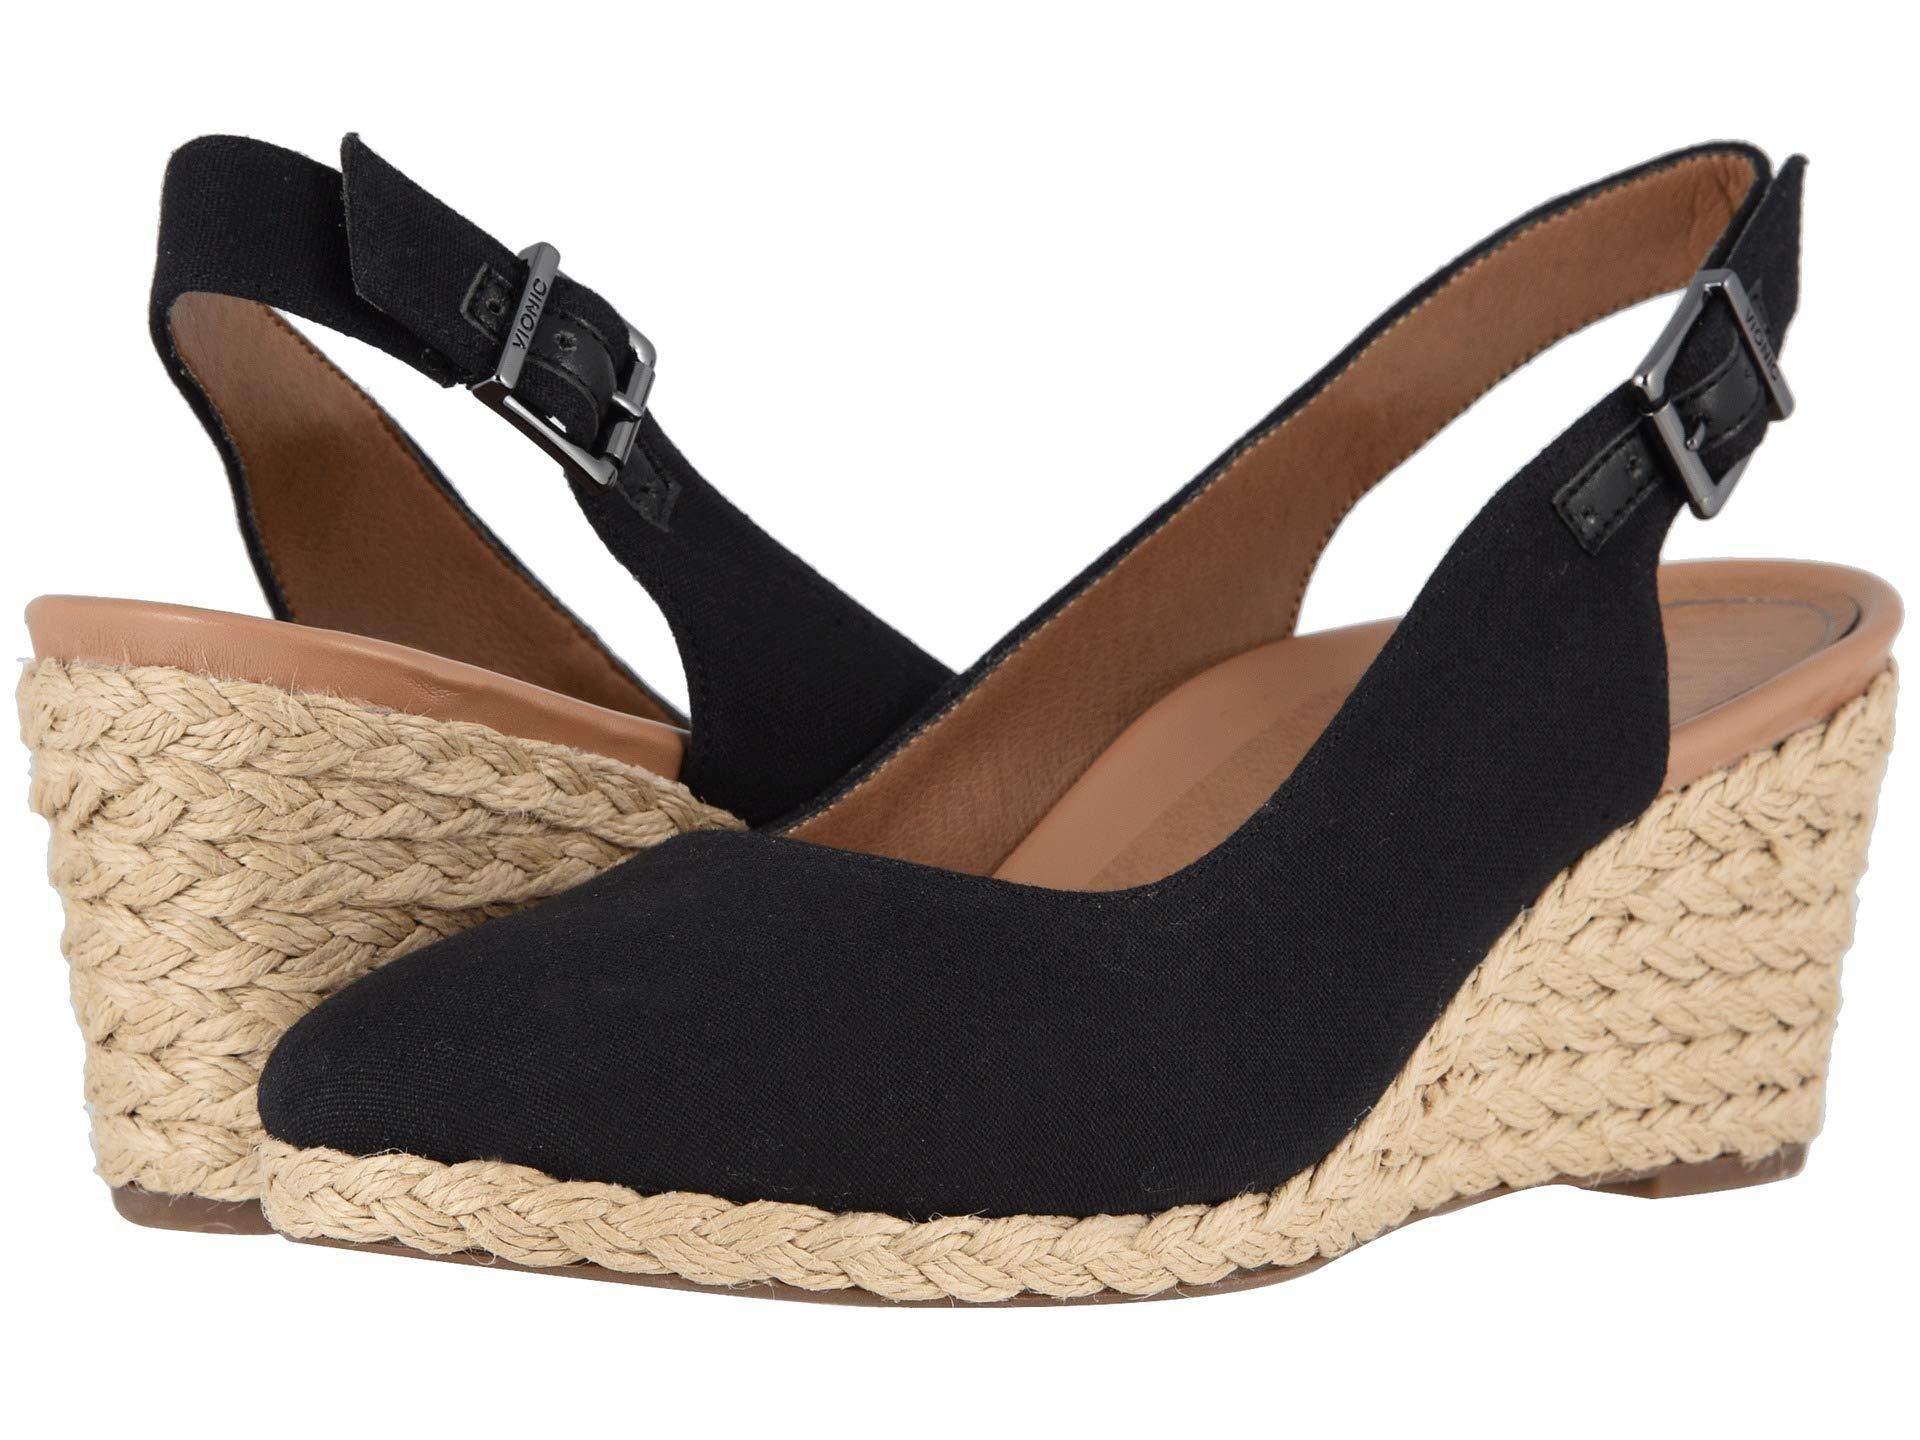 c1dfc5c04c9 Lyst - Vionic Coralina (olive) Women s Wedge Shoes in Black